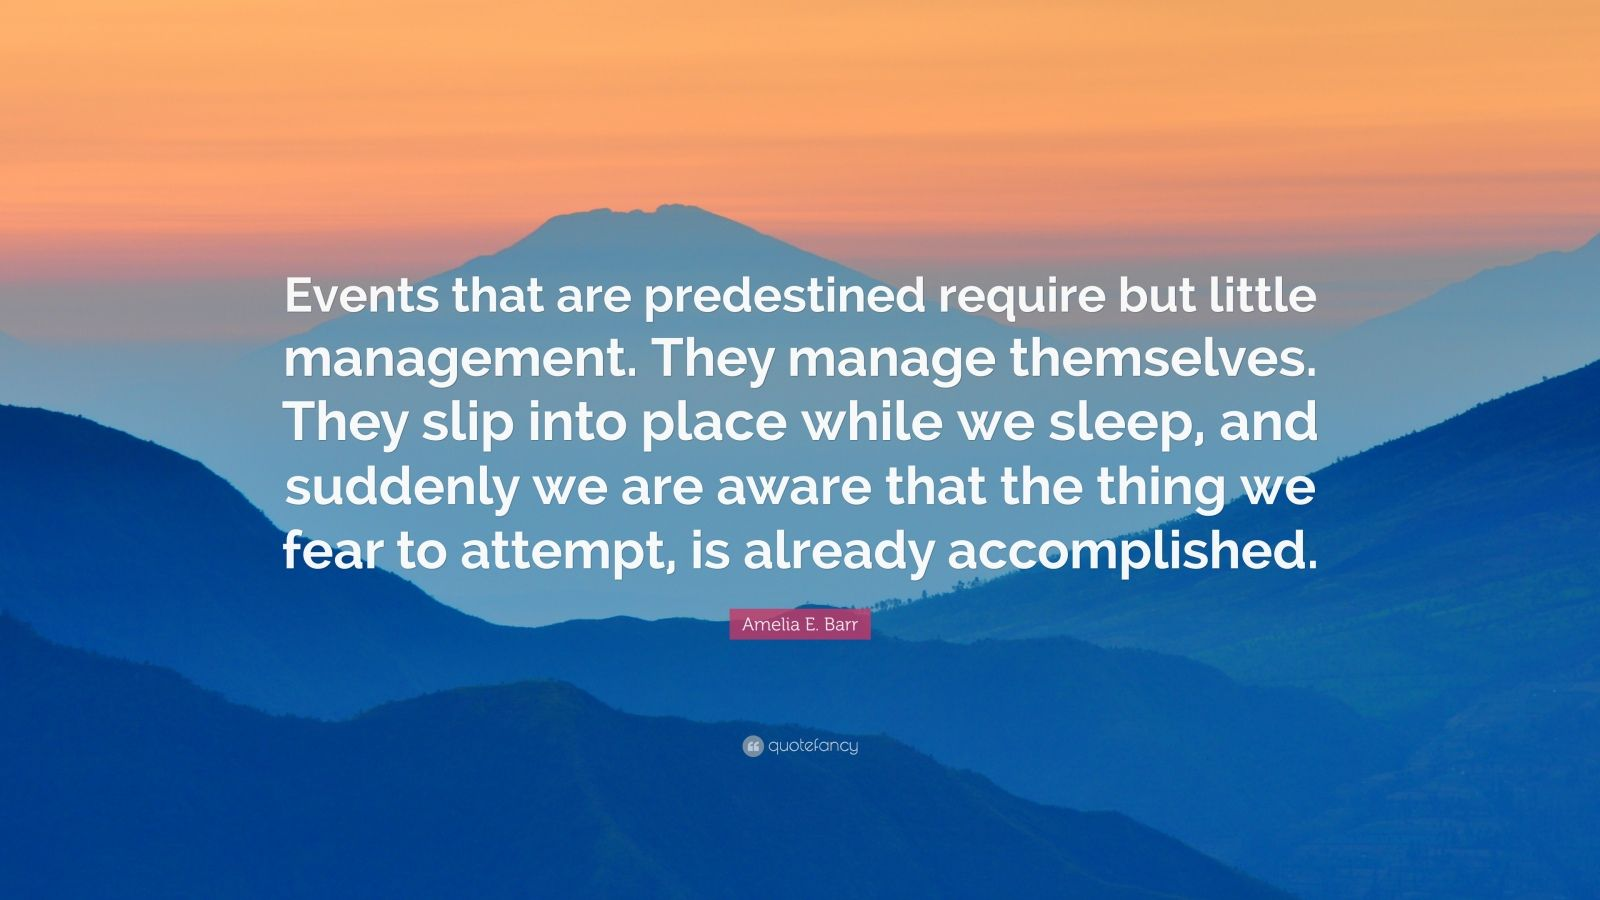 """Amelia E. Barr Quote: """"Events that are predestined require but little management. They manage themselves. They slip into place while we sleep, and suddenly we are aware that the thing we fear to attempt, is already accomplished."""""""